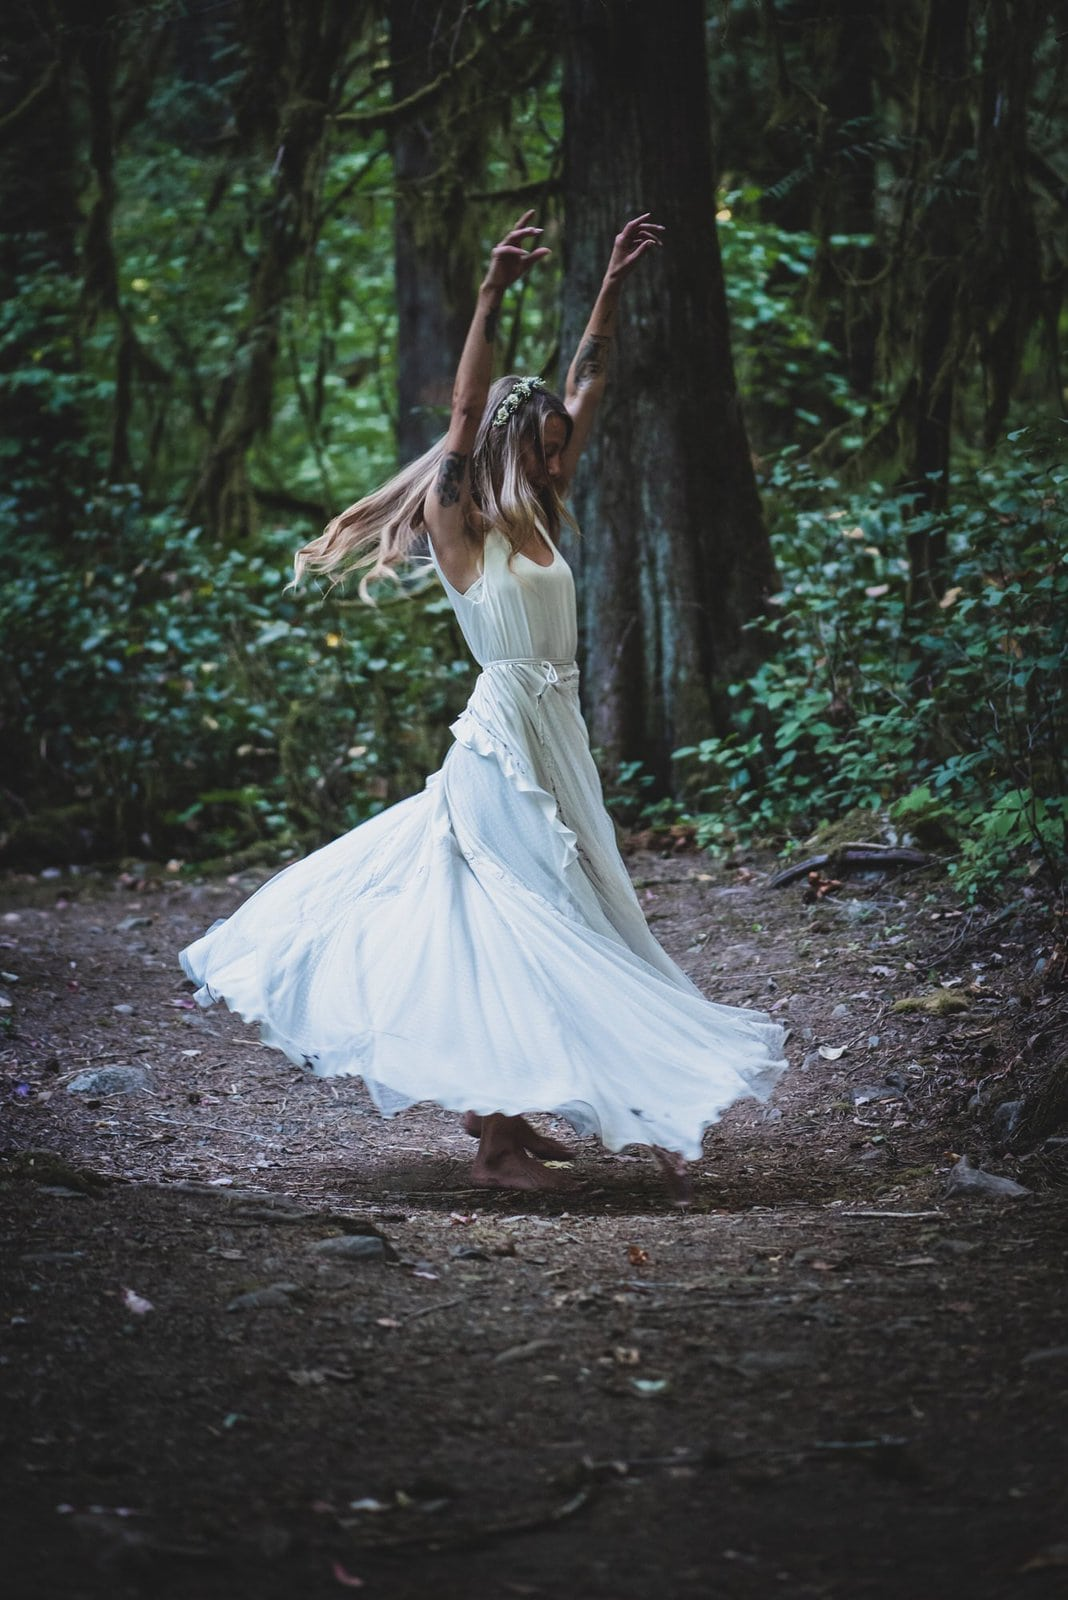 Detail shot of bride twirling in the forest.